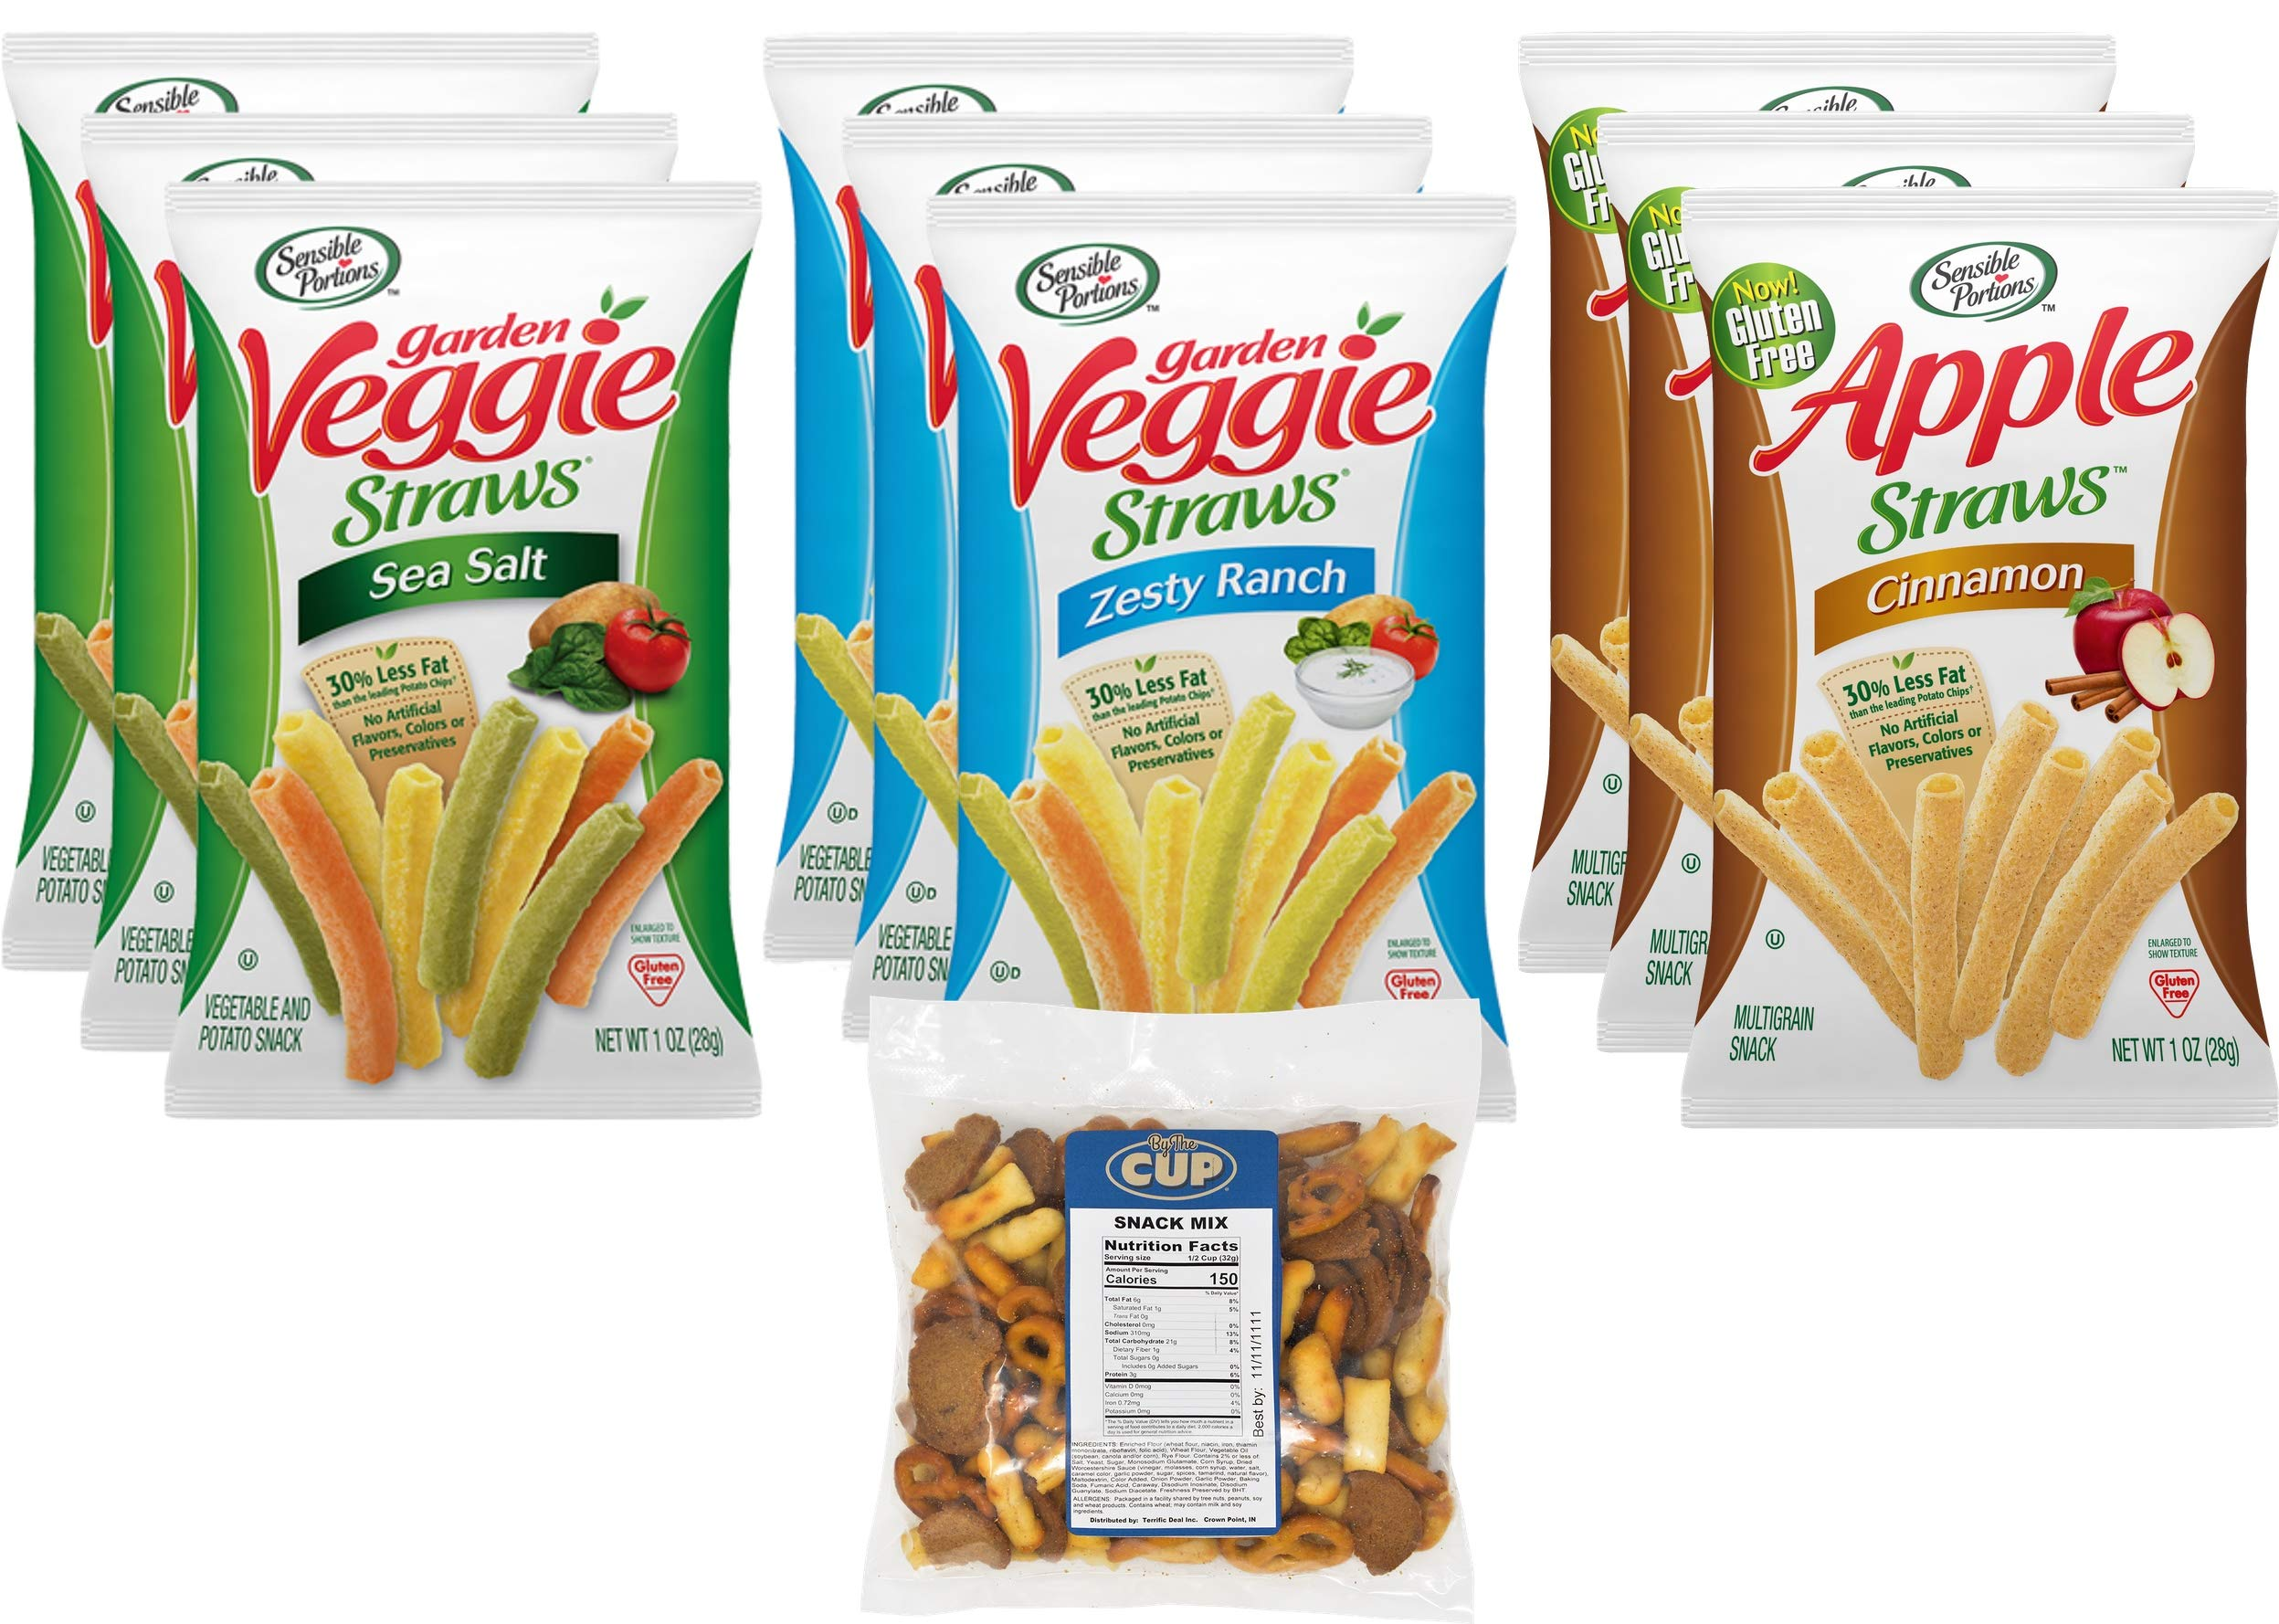 Sensible Portions Veggie and Apple Straws Variety Pack, 9 Count 1 Ounce Bags, 3 Different Flavors with By The Cup Snack Mix by By The Cup